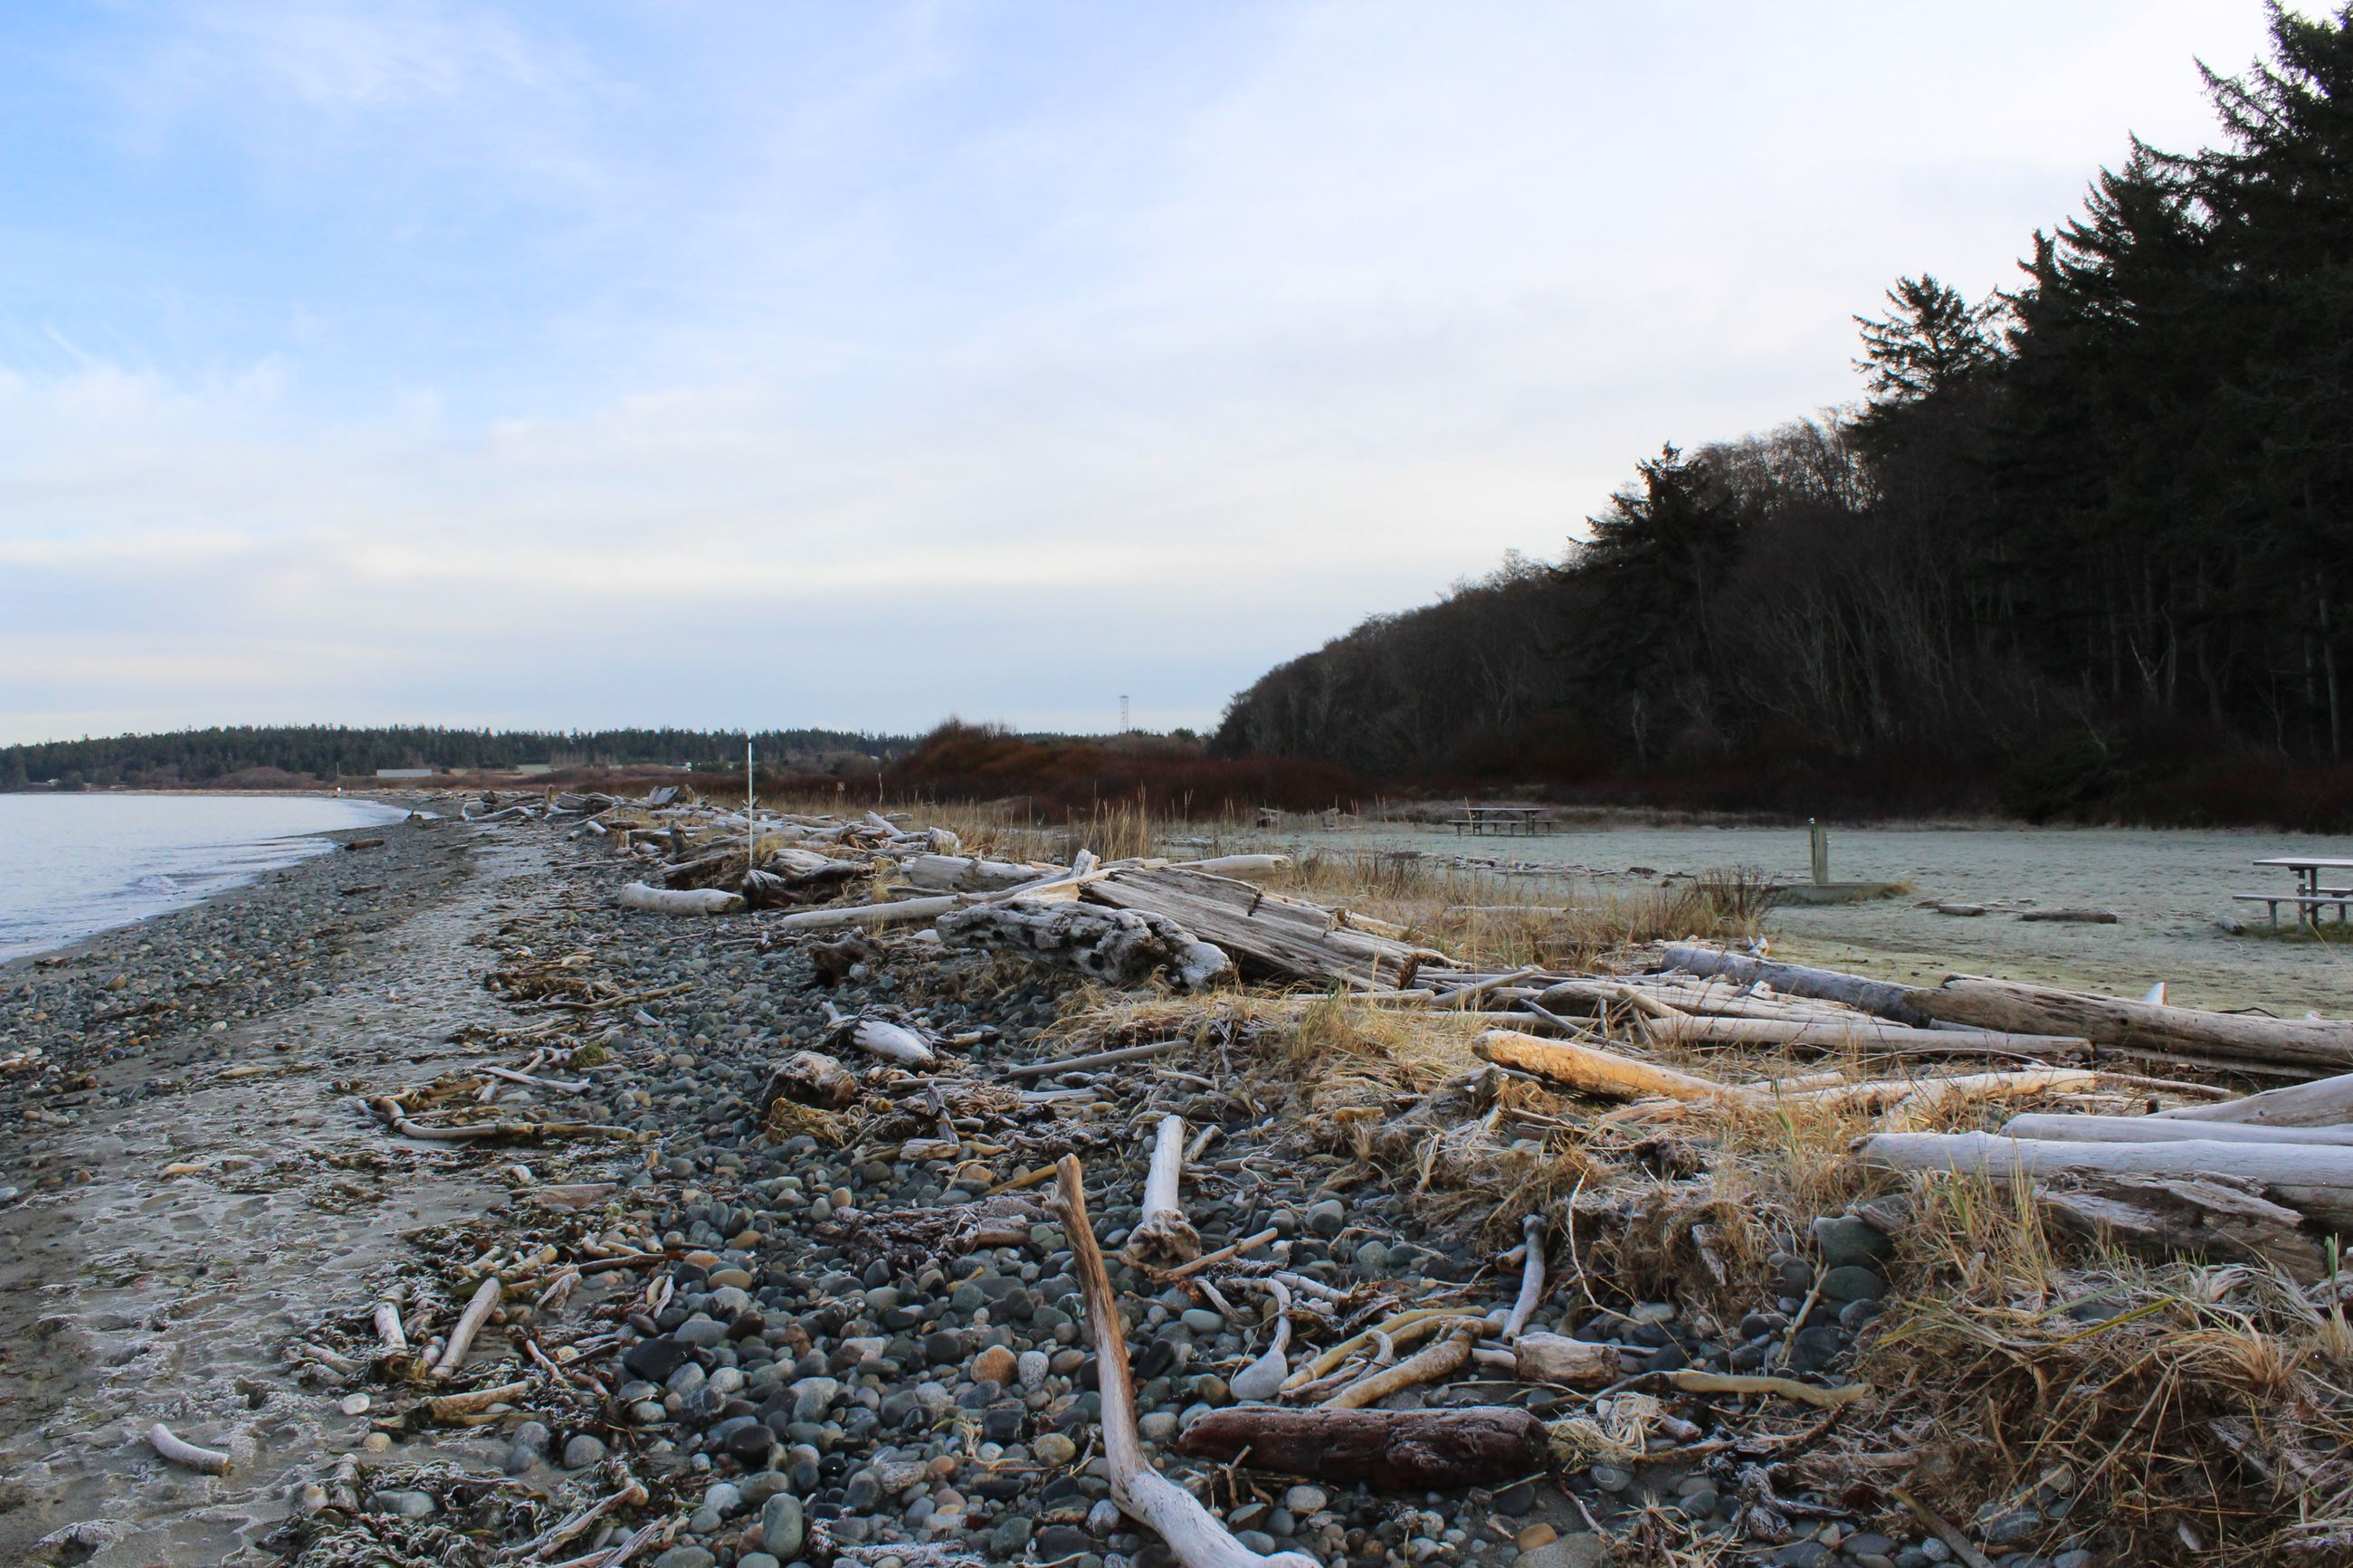 Wood debris on a shoreline with trees in background